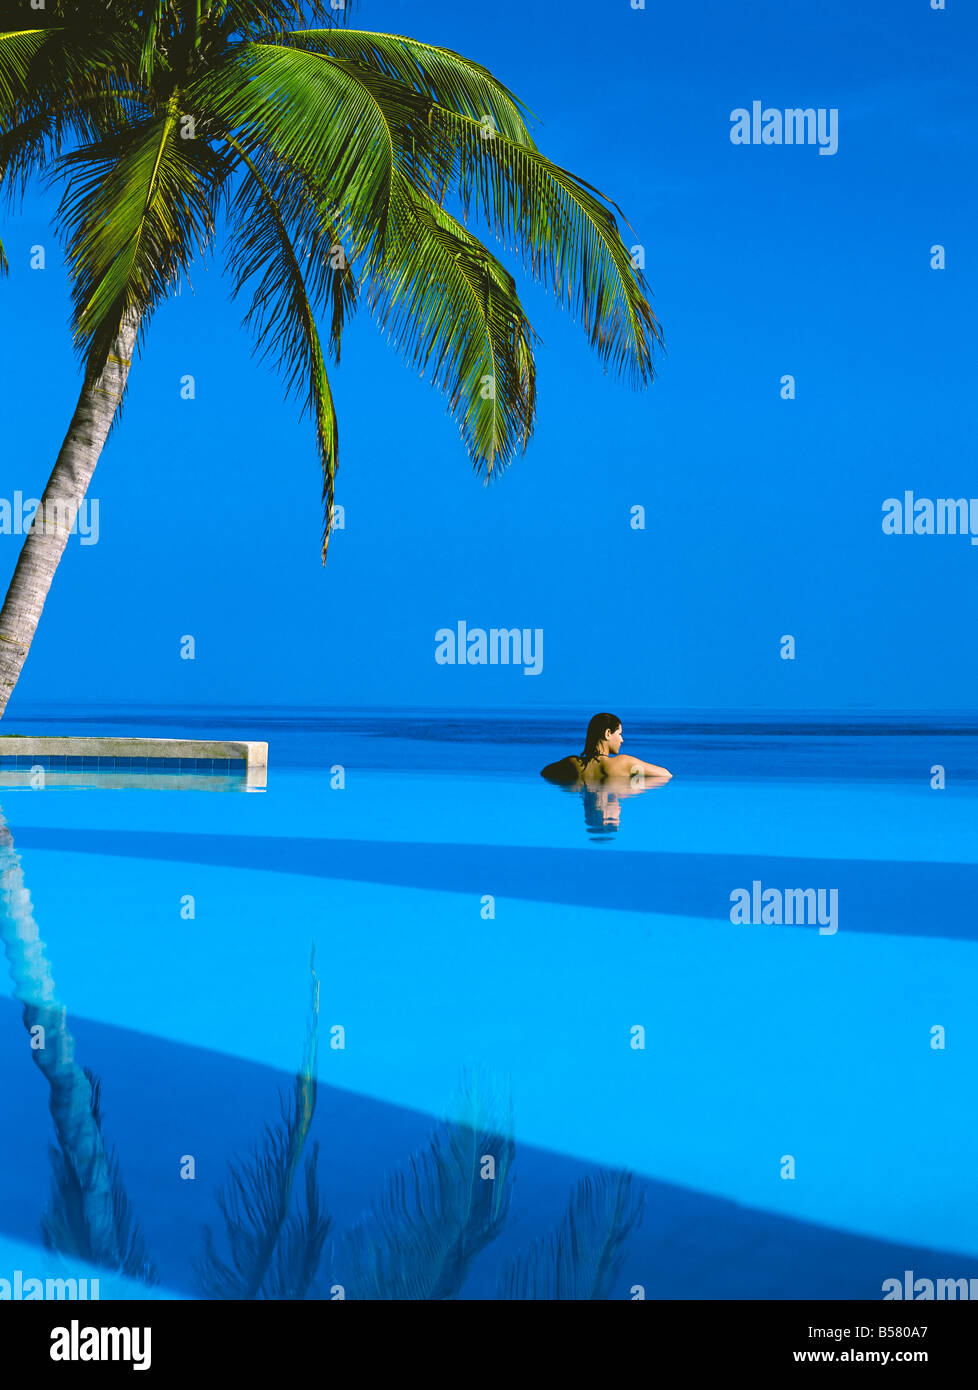 Woman in swimming pool under palm tree looking at sea, Maldives, Indian Ocean, Asia - Stock Image